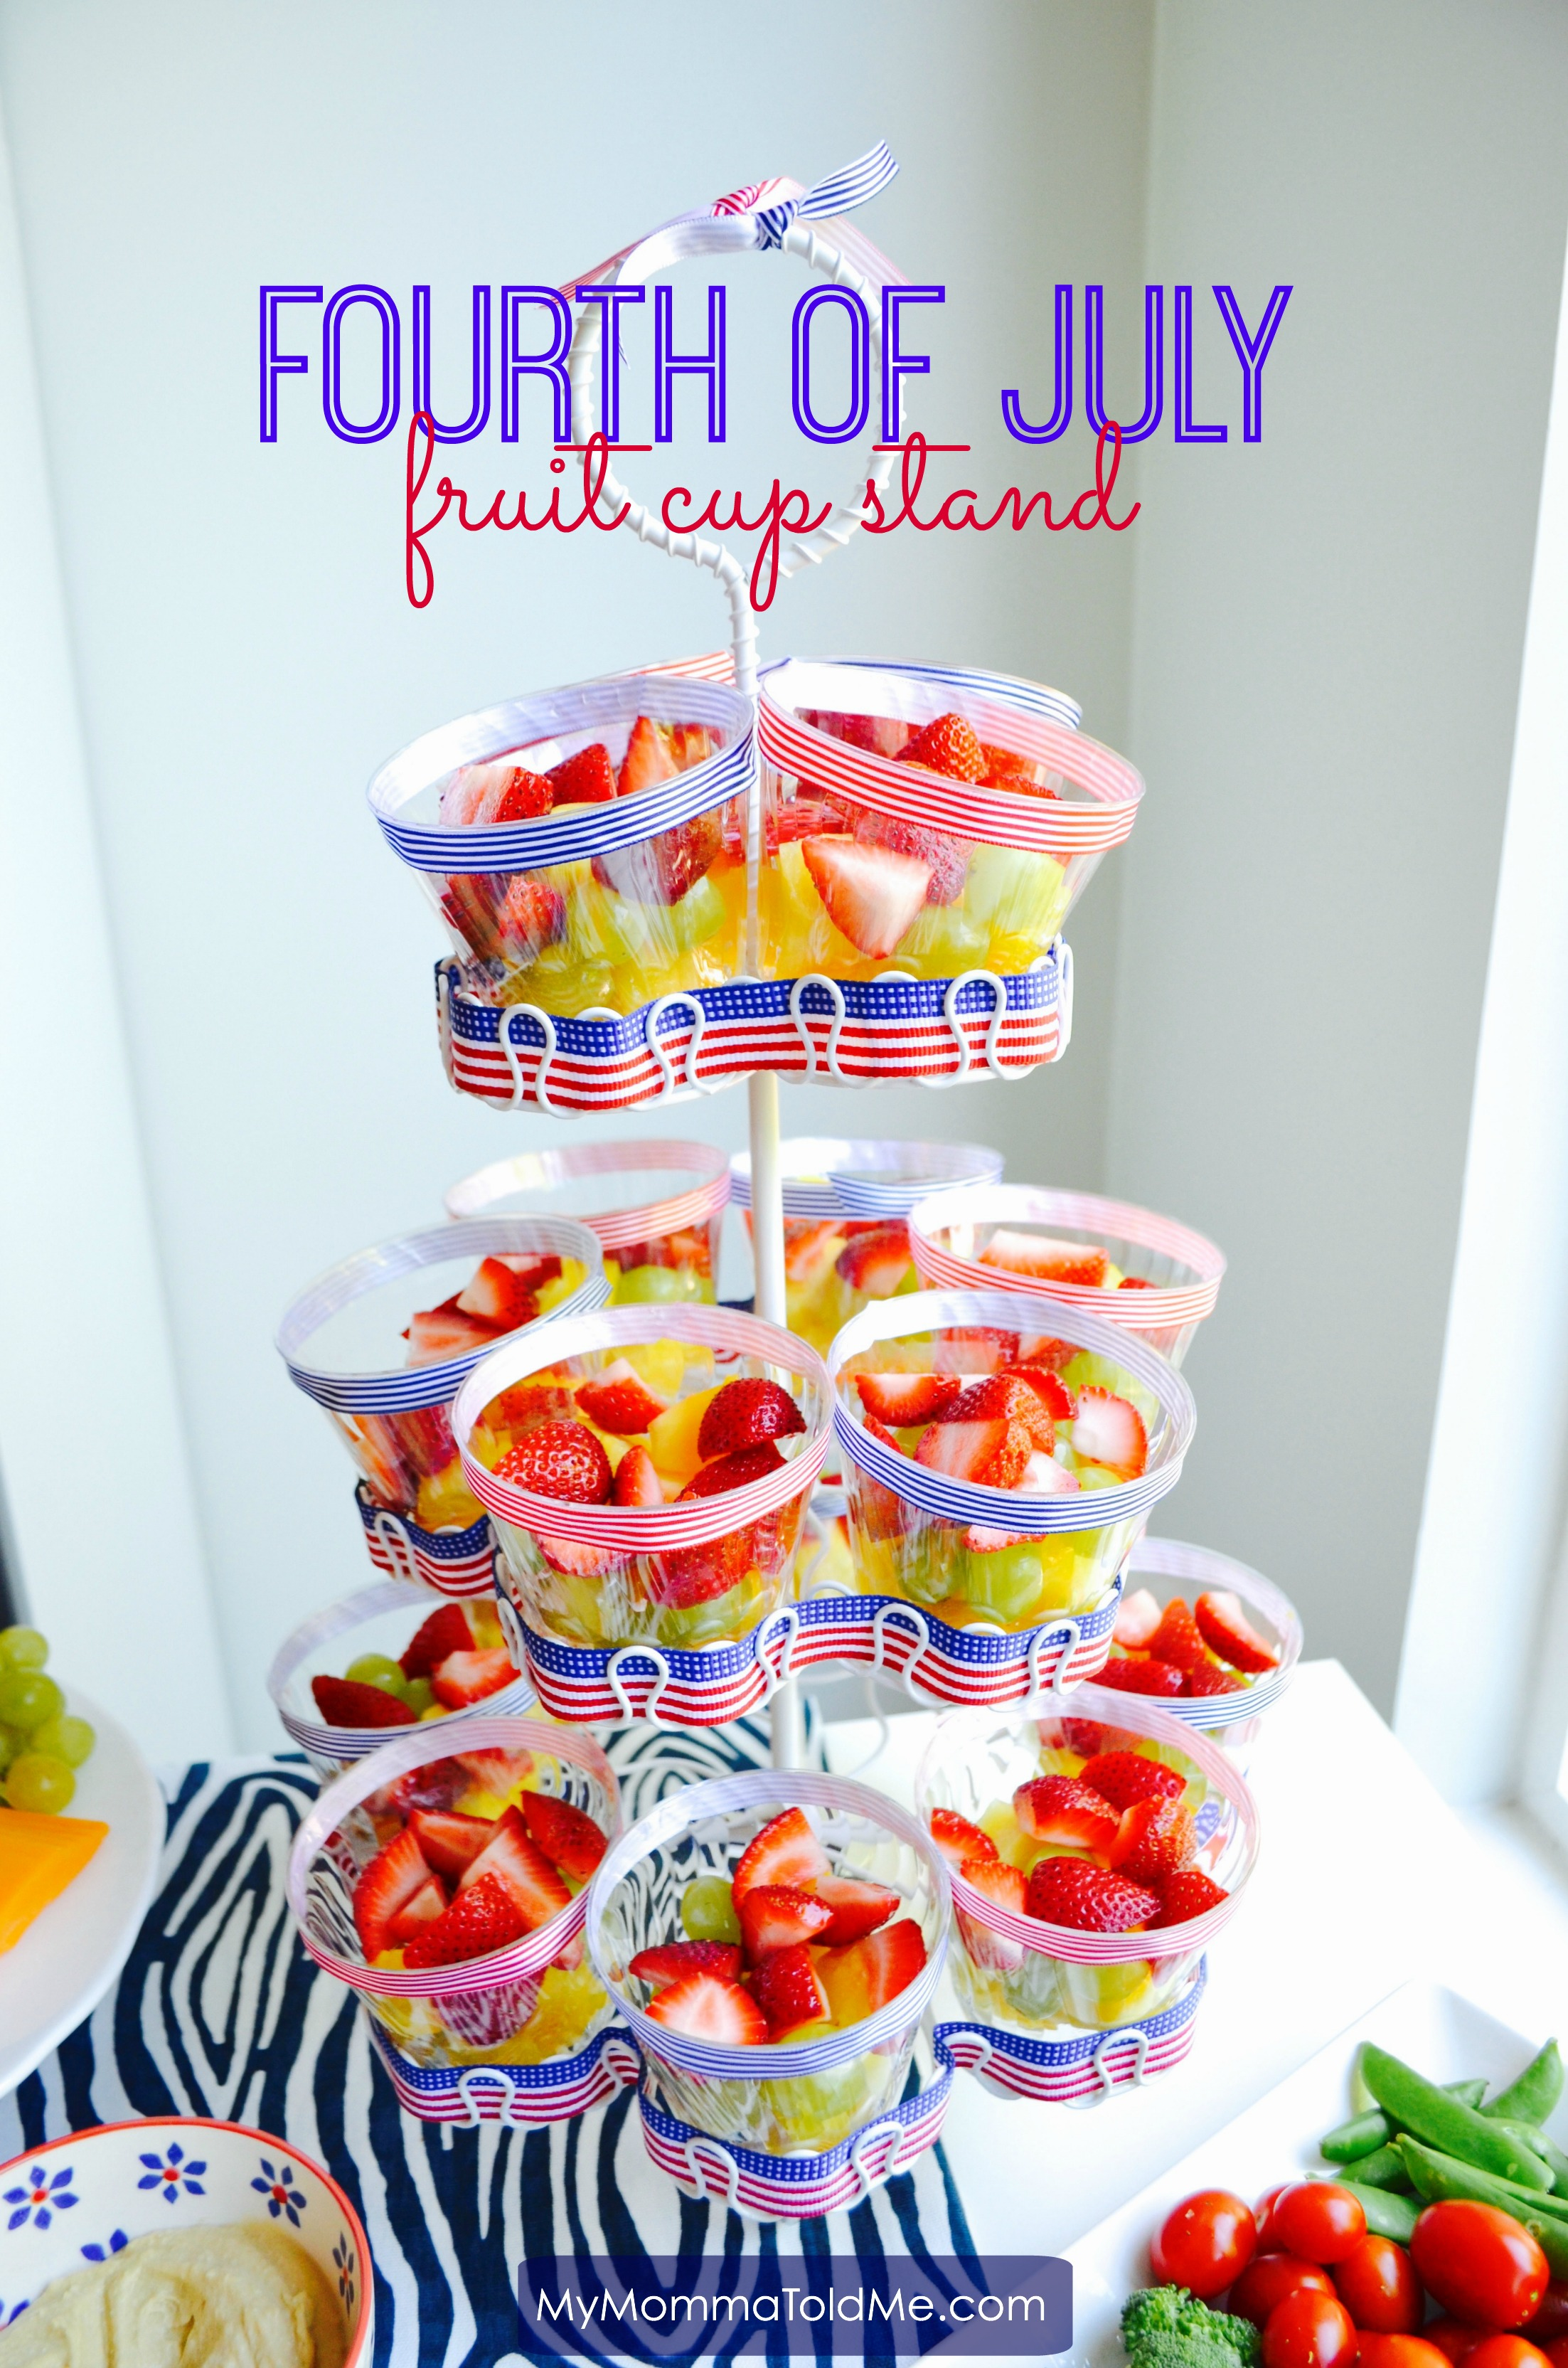 Fourth of July fruit Cup Stand Nutritarian Eat to Live Program MyMommaToldMe.com